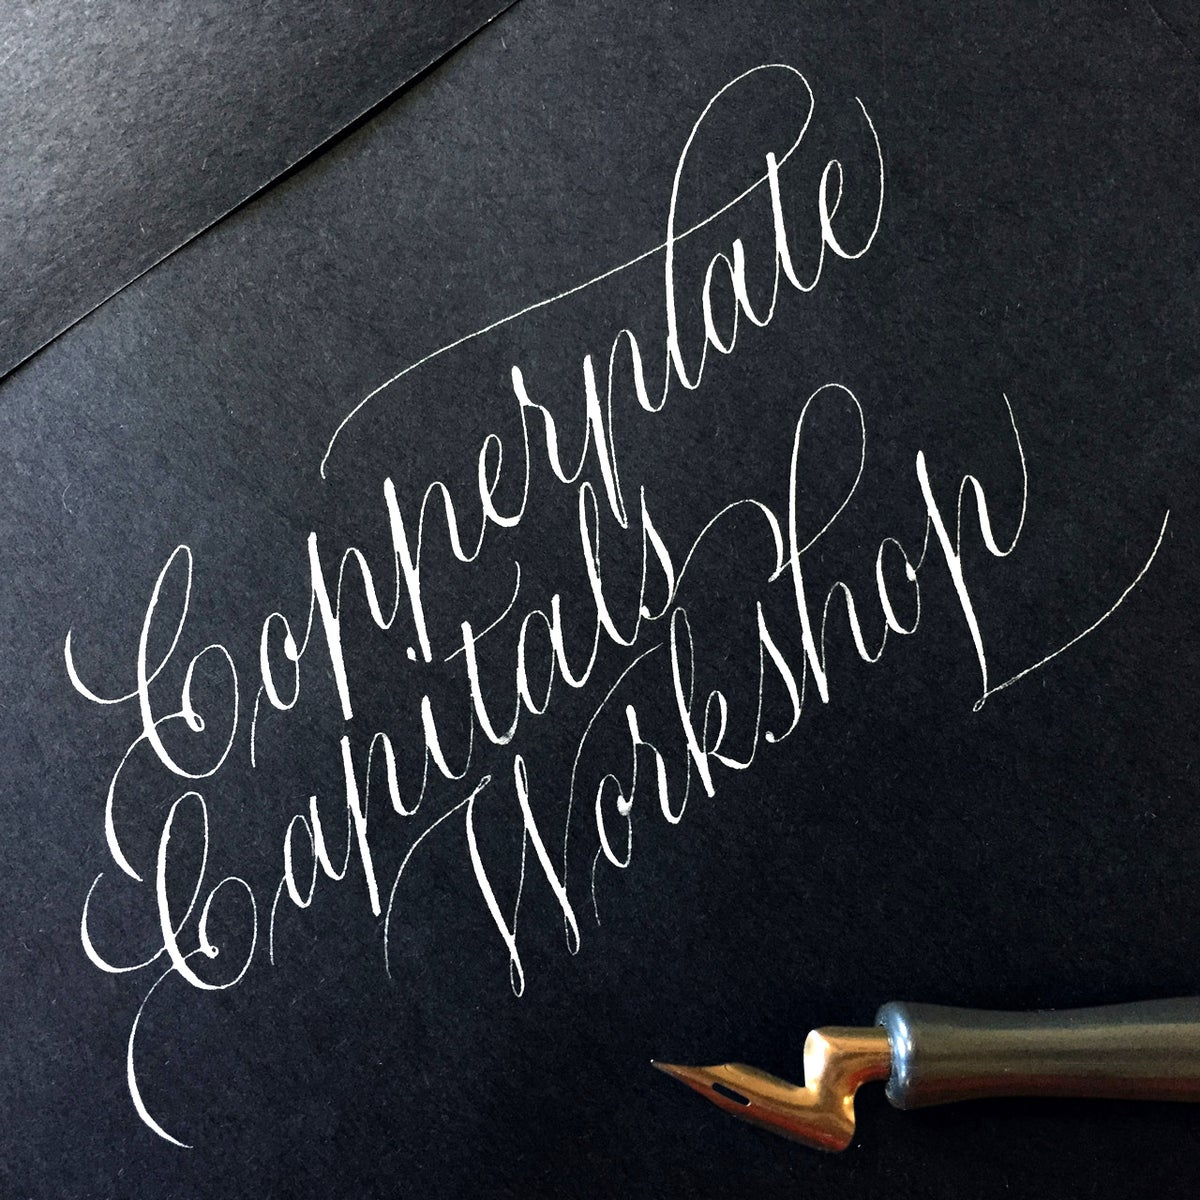 Image of Copperplate Capitals Weekend Masterclass